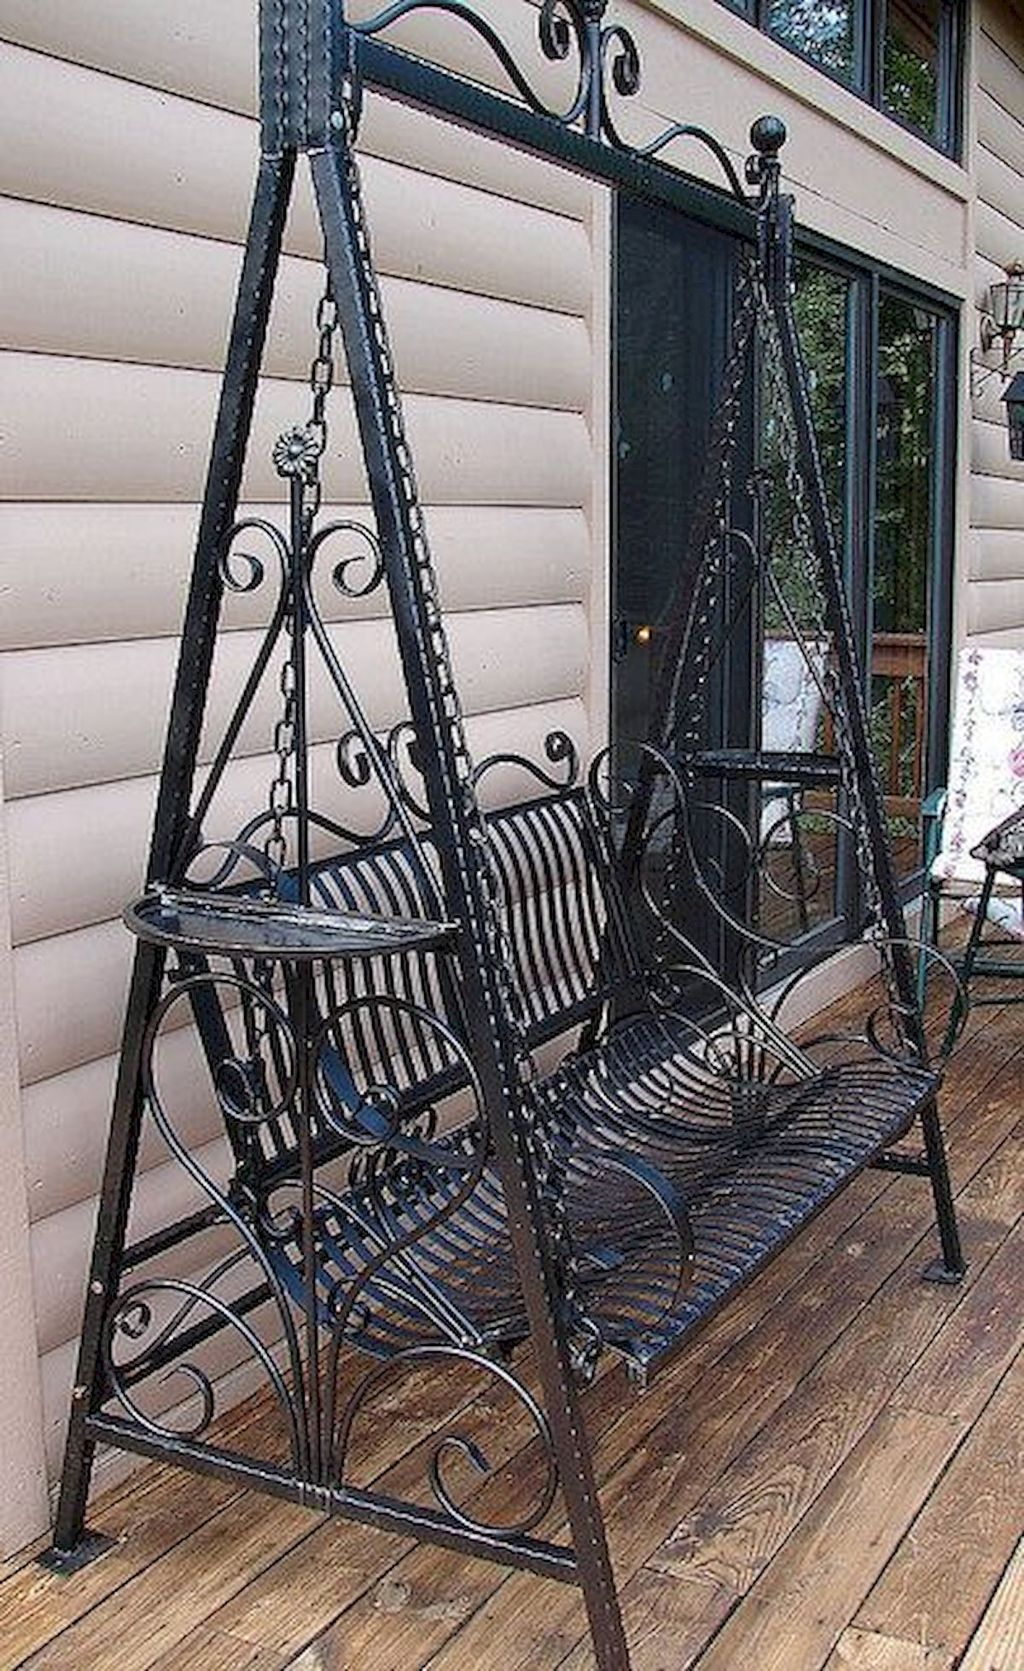 80 Awesome Garden Swing Seats Ideas For Backyard Relaxing ... encequiconcerne Balancelle Fer Forgé Jardin